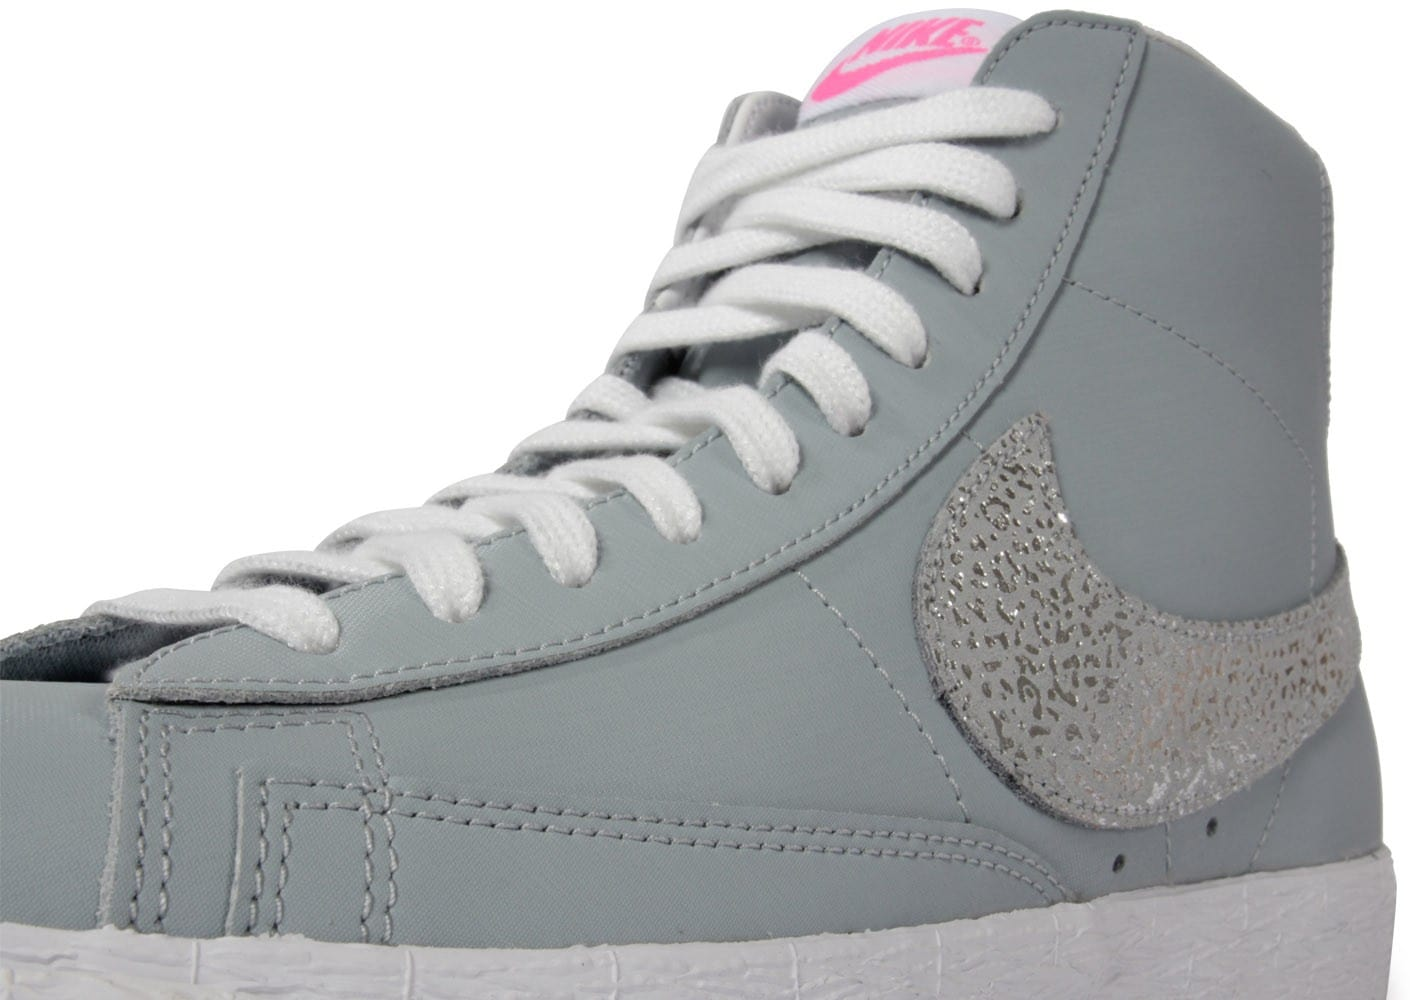 nike blazer grise glitter chaussures chaussures chausport. Black Bedroom Furniture Sets. Home Design Ideas